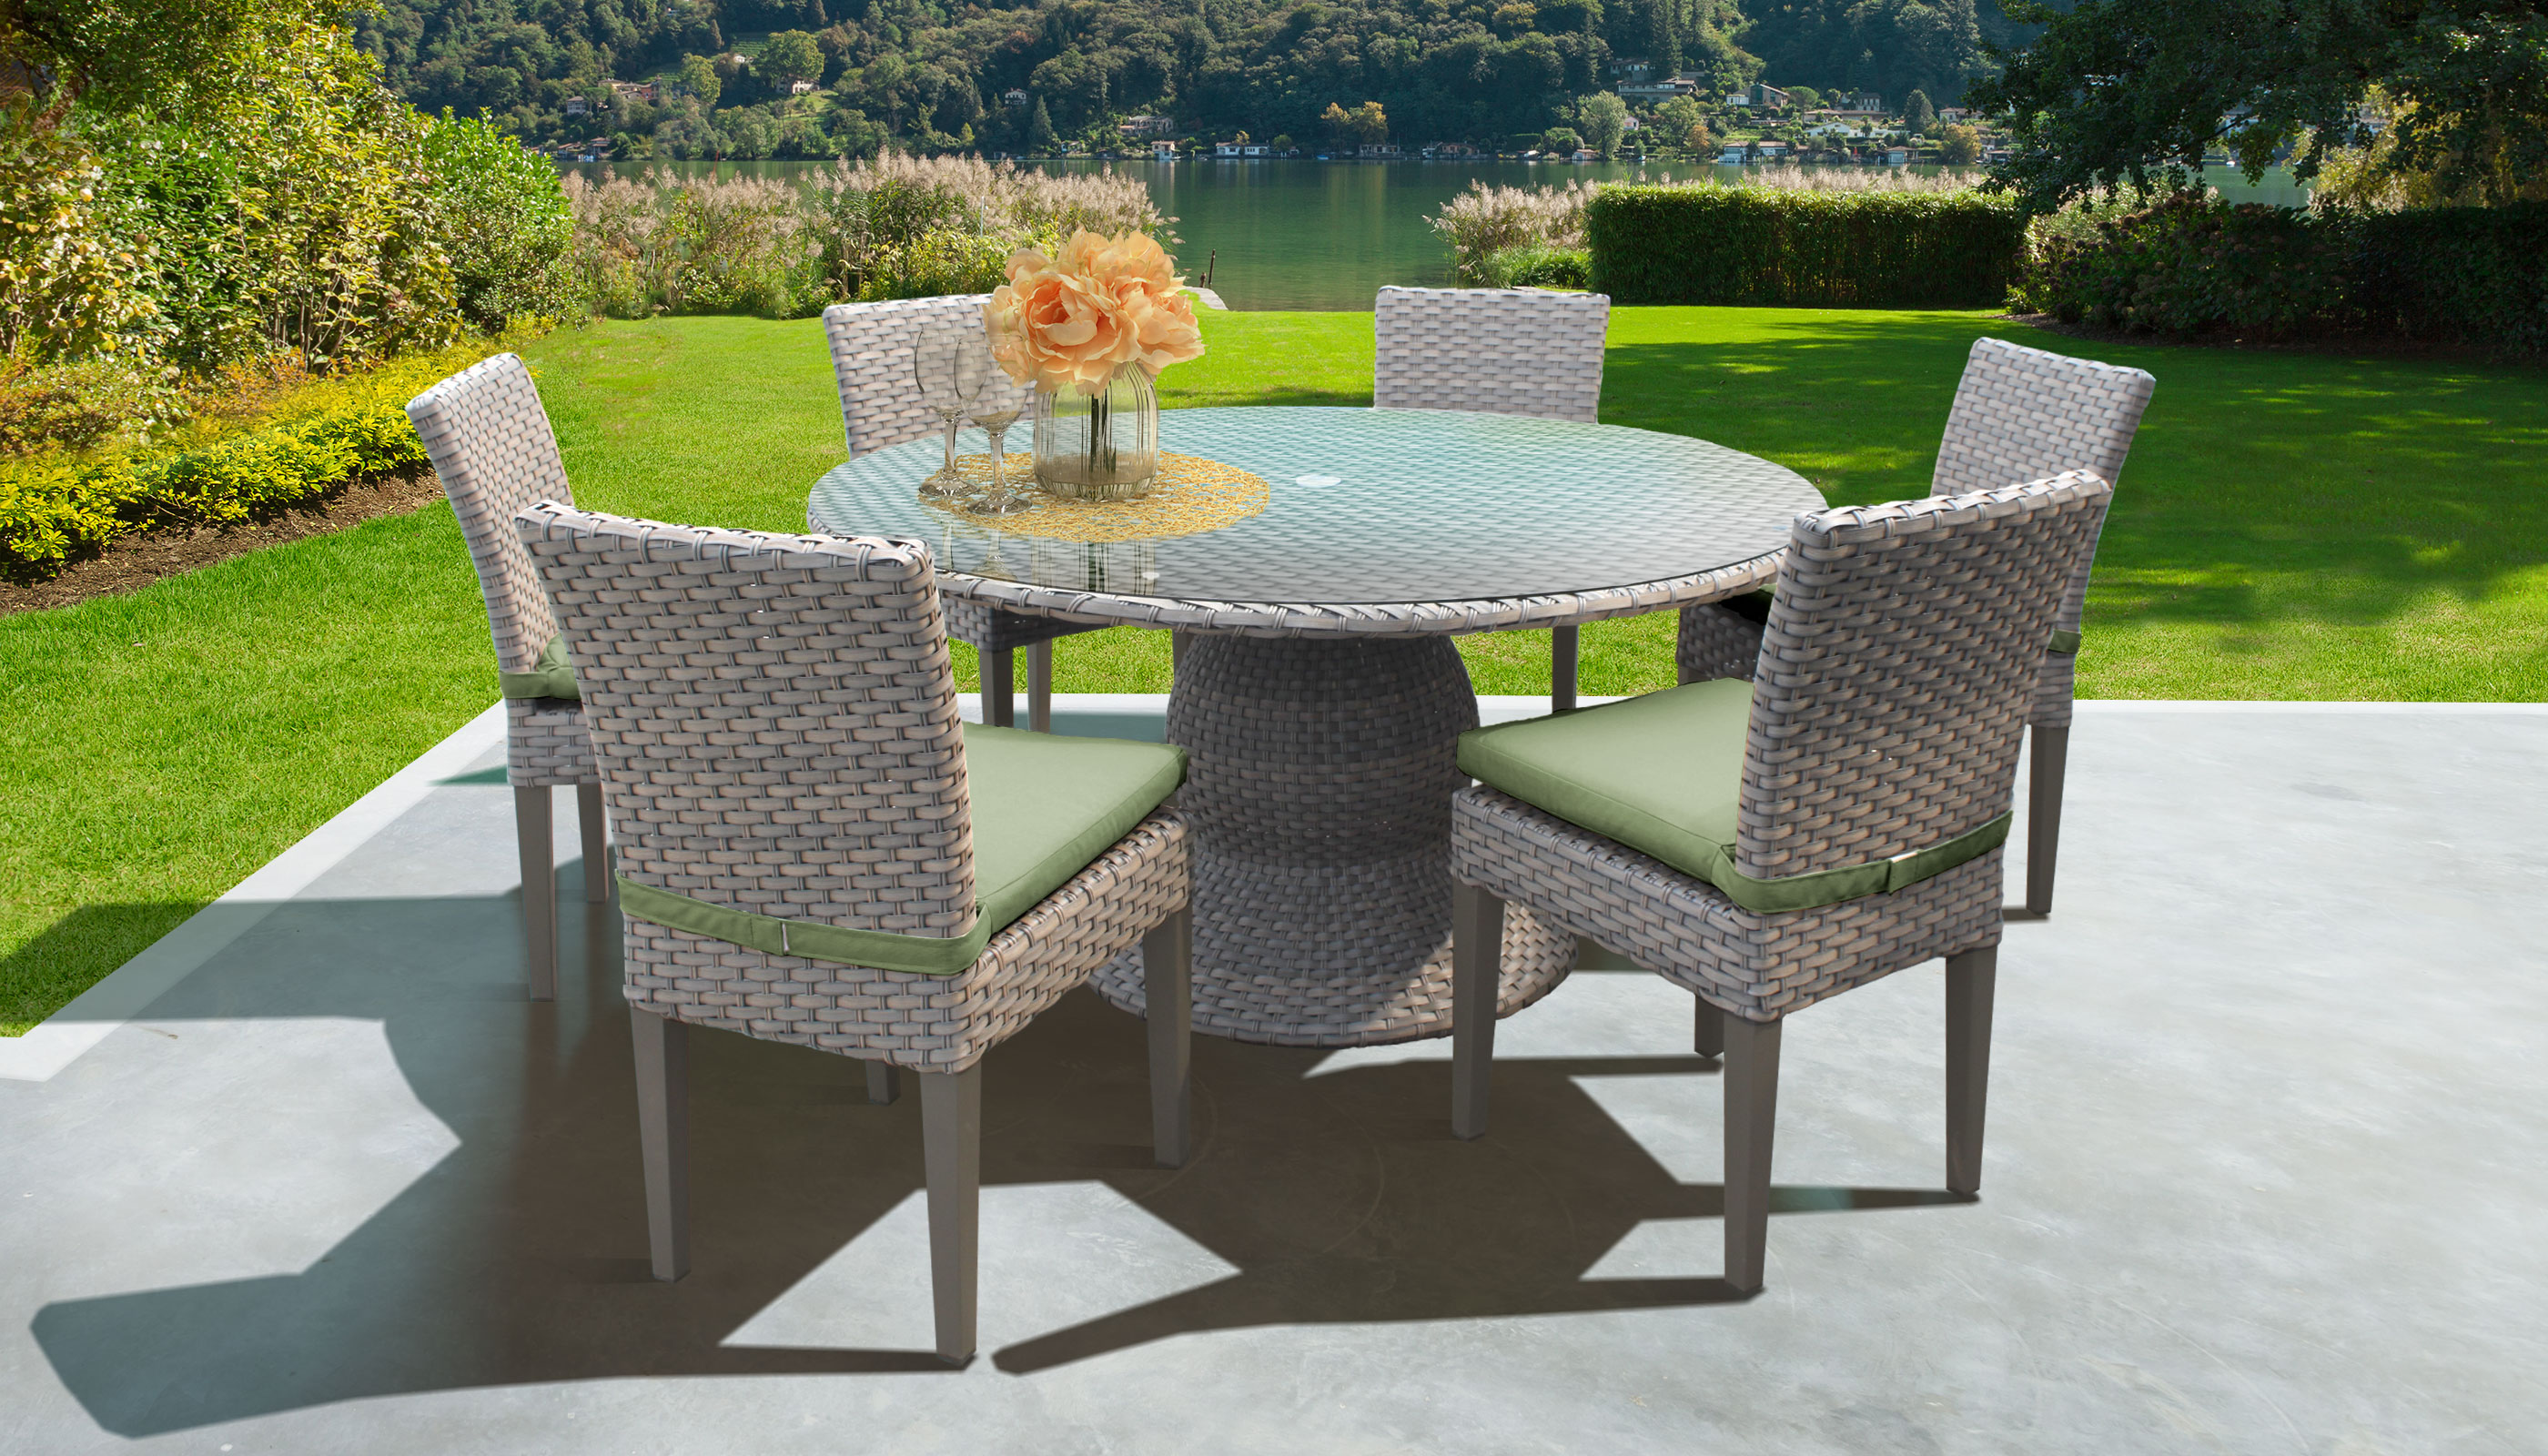 Harmony 60 Inch Outdoor Patio Dining Table With 6 Chairs - Design Furnishings